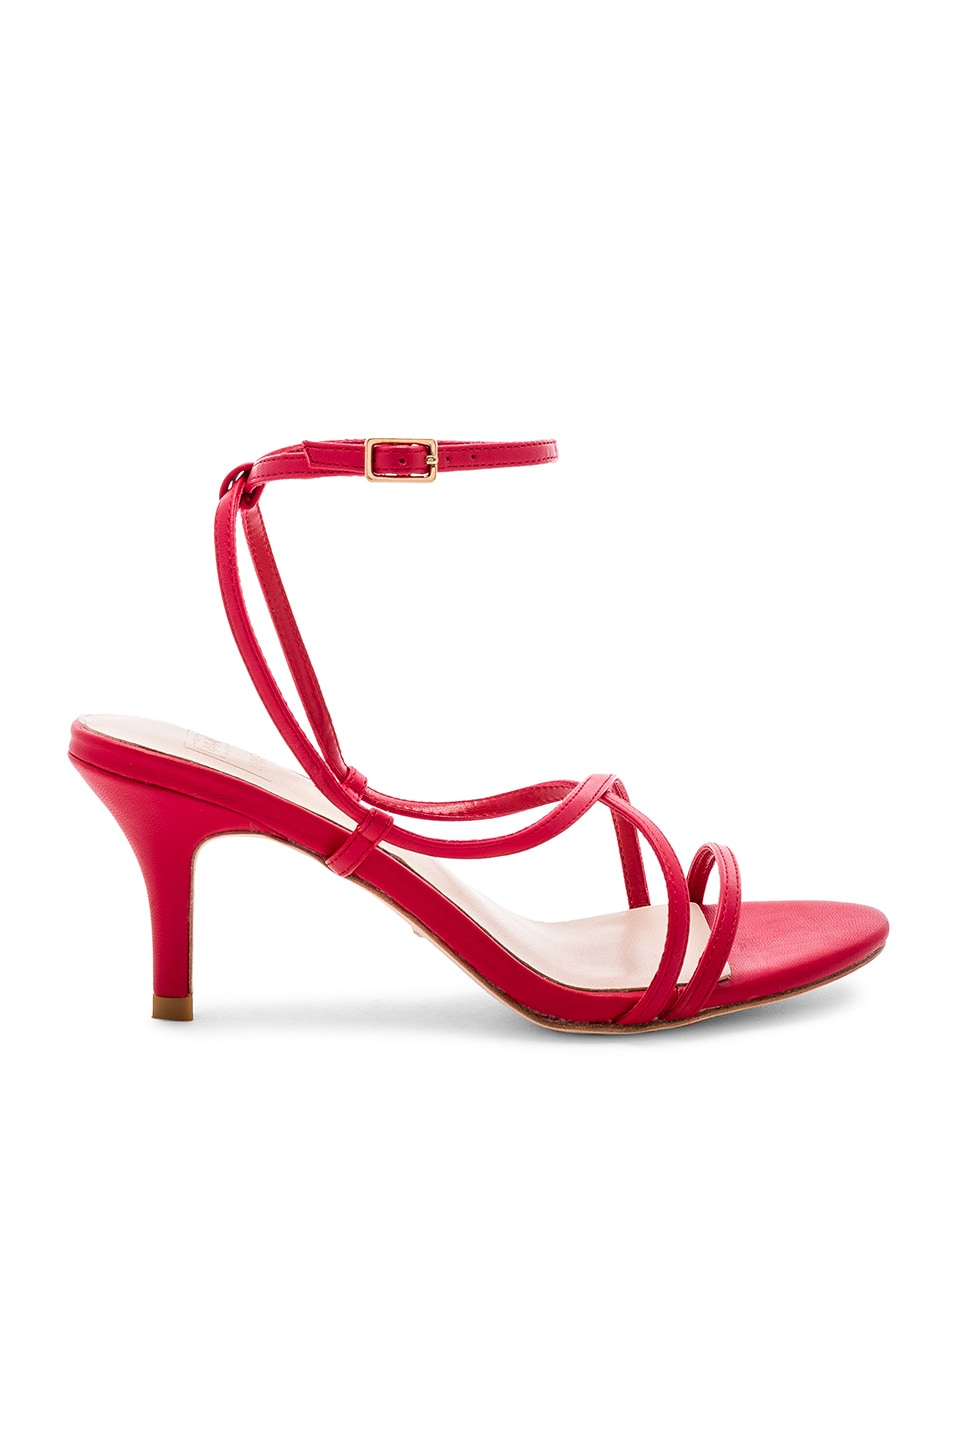 RAYE x STONE_COLD_FOX Vine Heel in Red